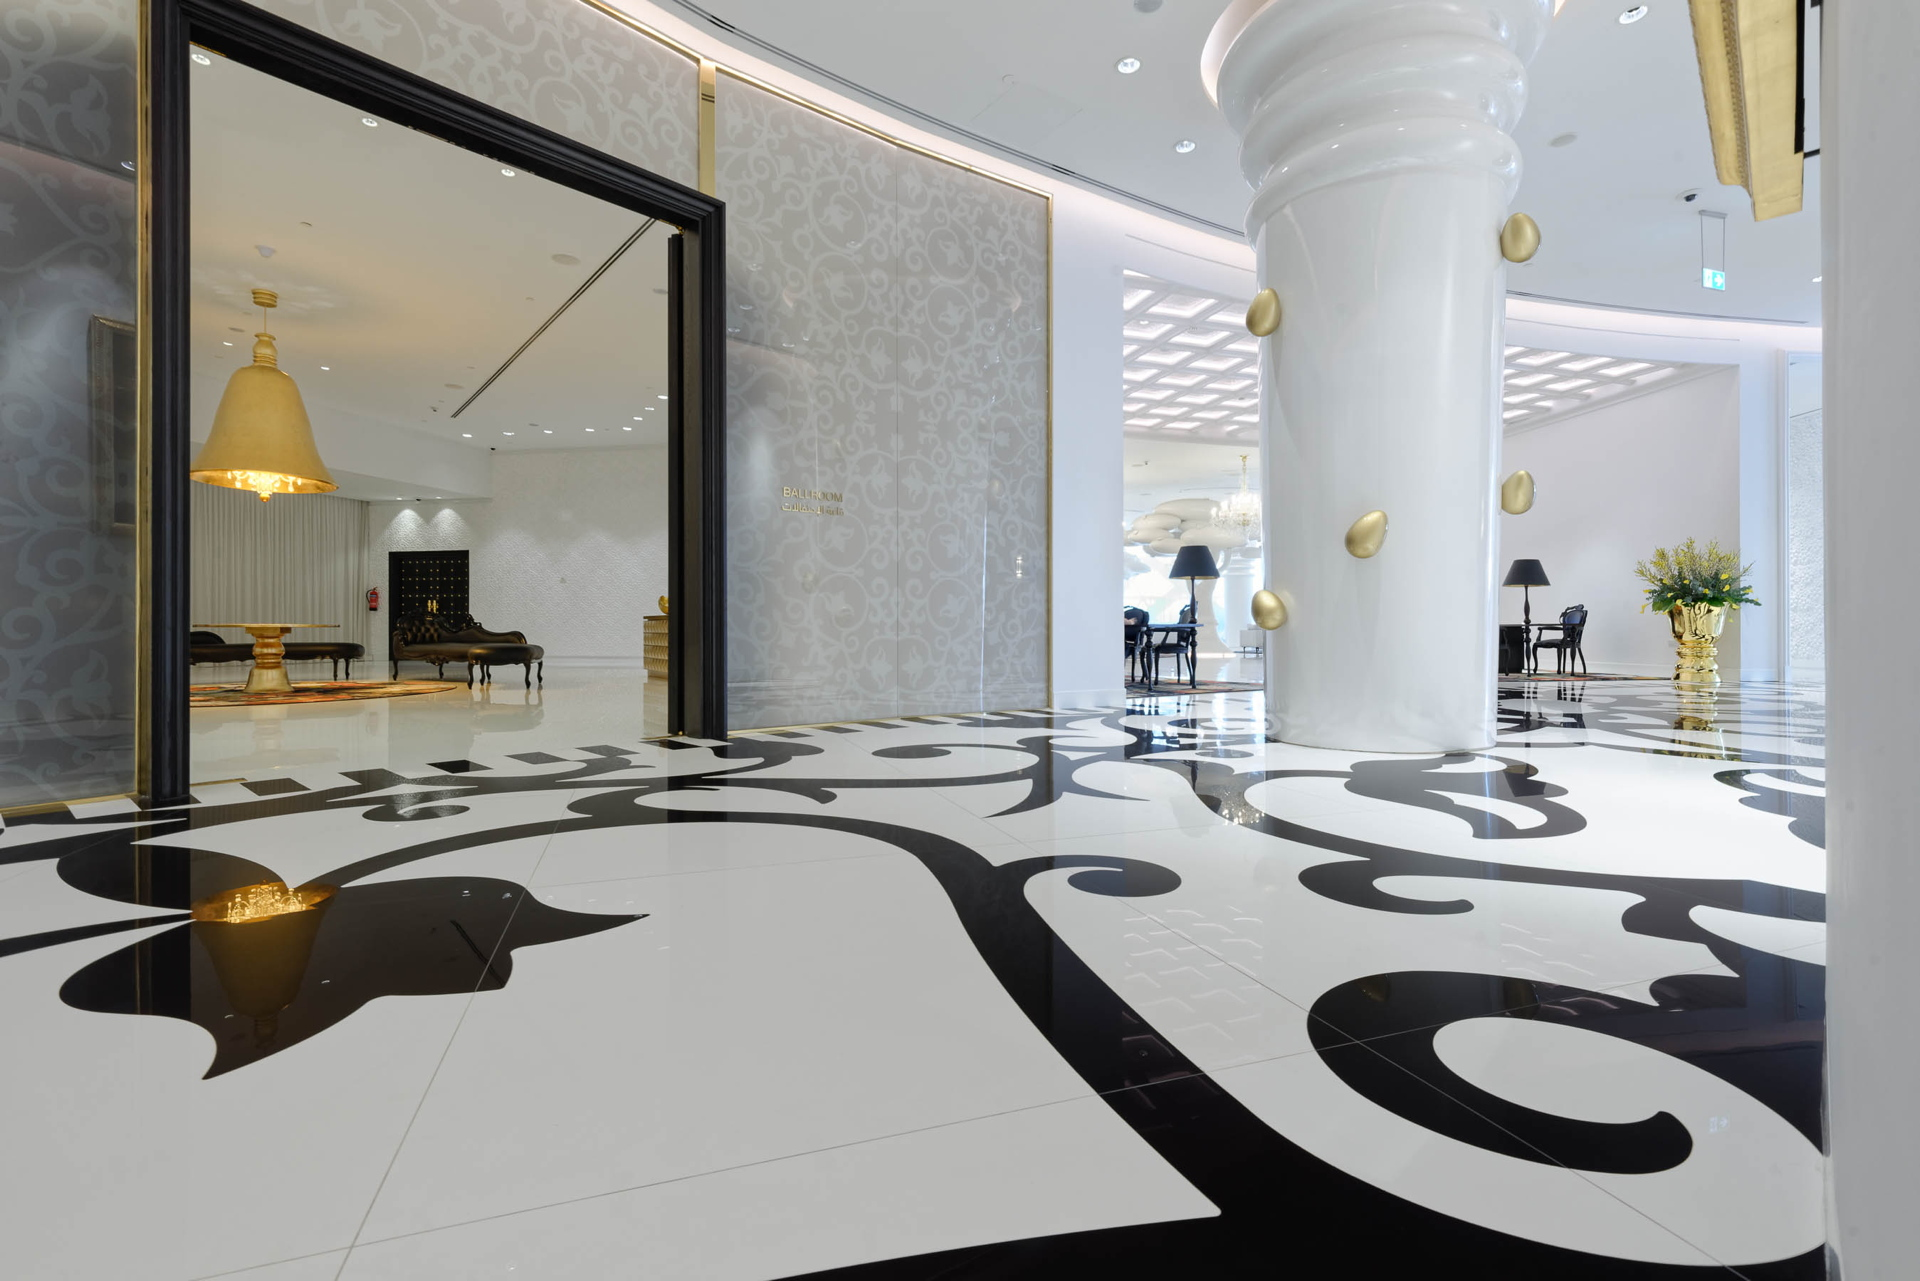 South West Architecture with FMG: Mondrian Doha in Qatar